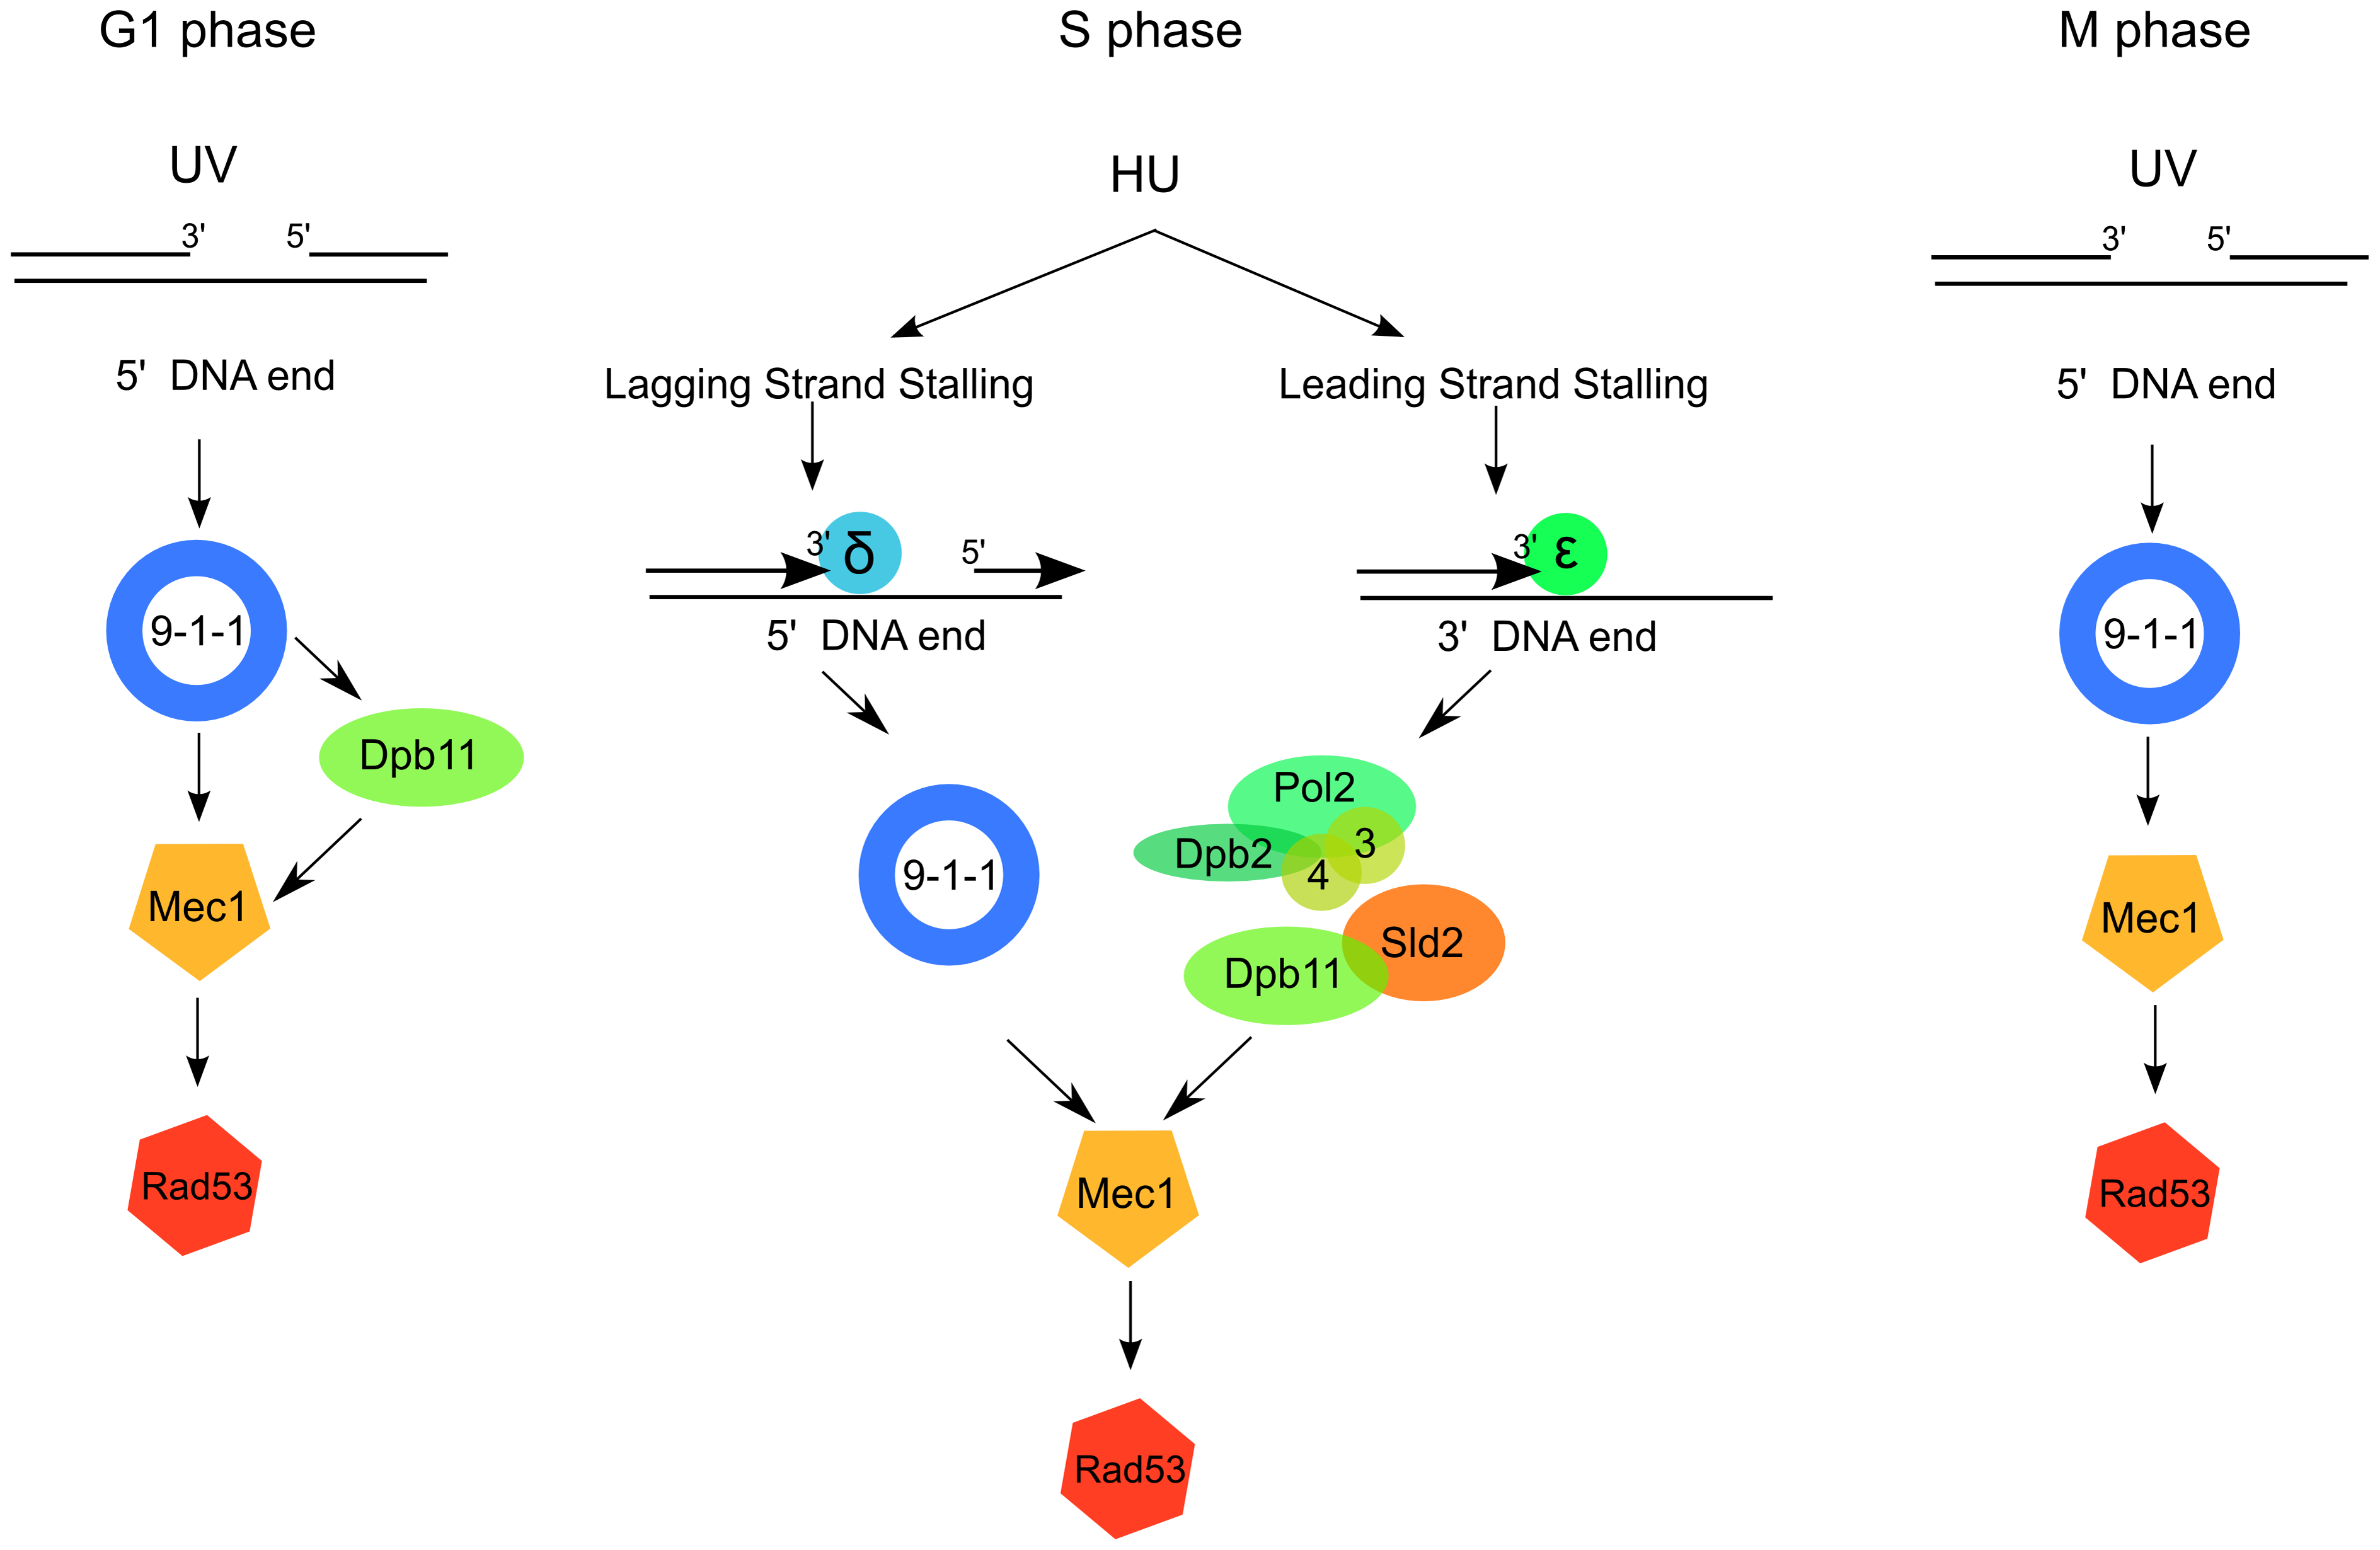 A model for 9-1-1 and Dpb11 function in Mec1 activation.